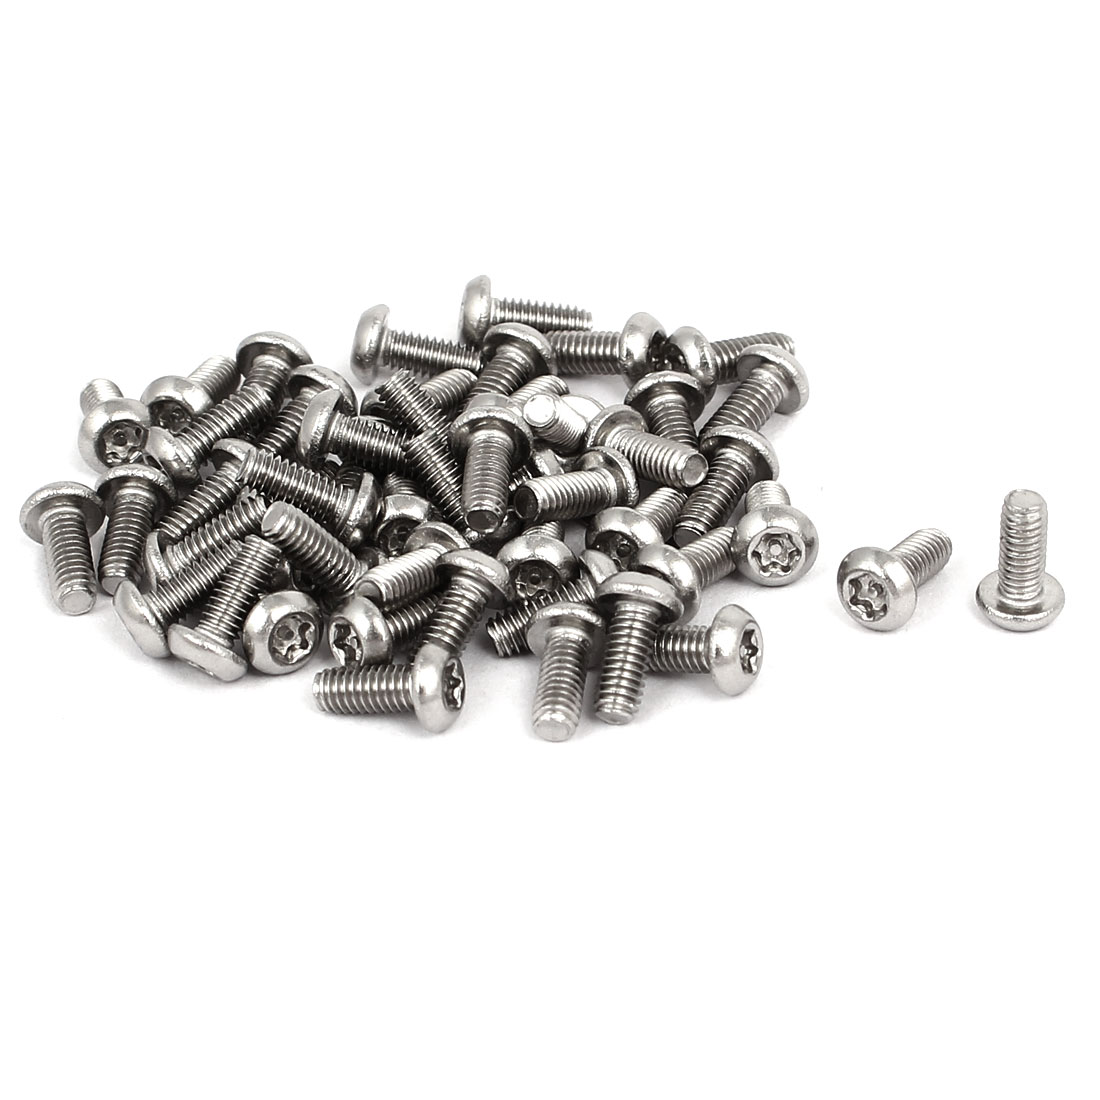 M2.5x6mm 304 Stainless Steel Button Head Torx Security Machine Screws 50pcs